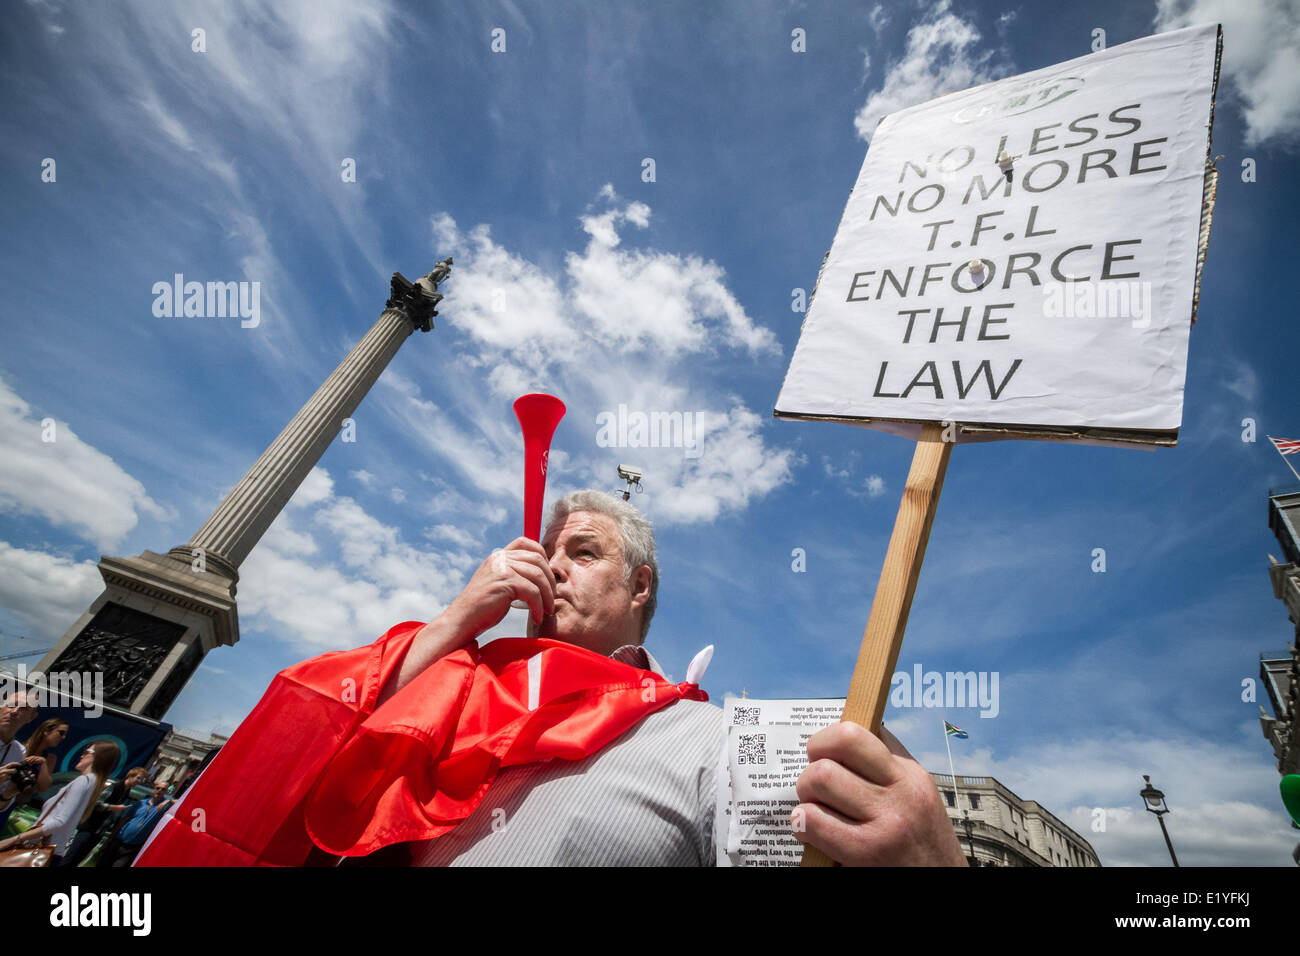 London, UK. 11th June, 2014. Taxi driver protest against Uber app in central London Credit:  Guy Corbishley/Alamy Stock Photo